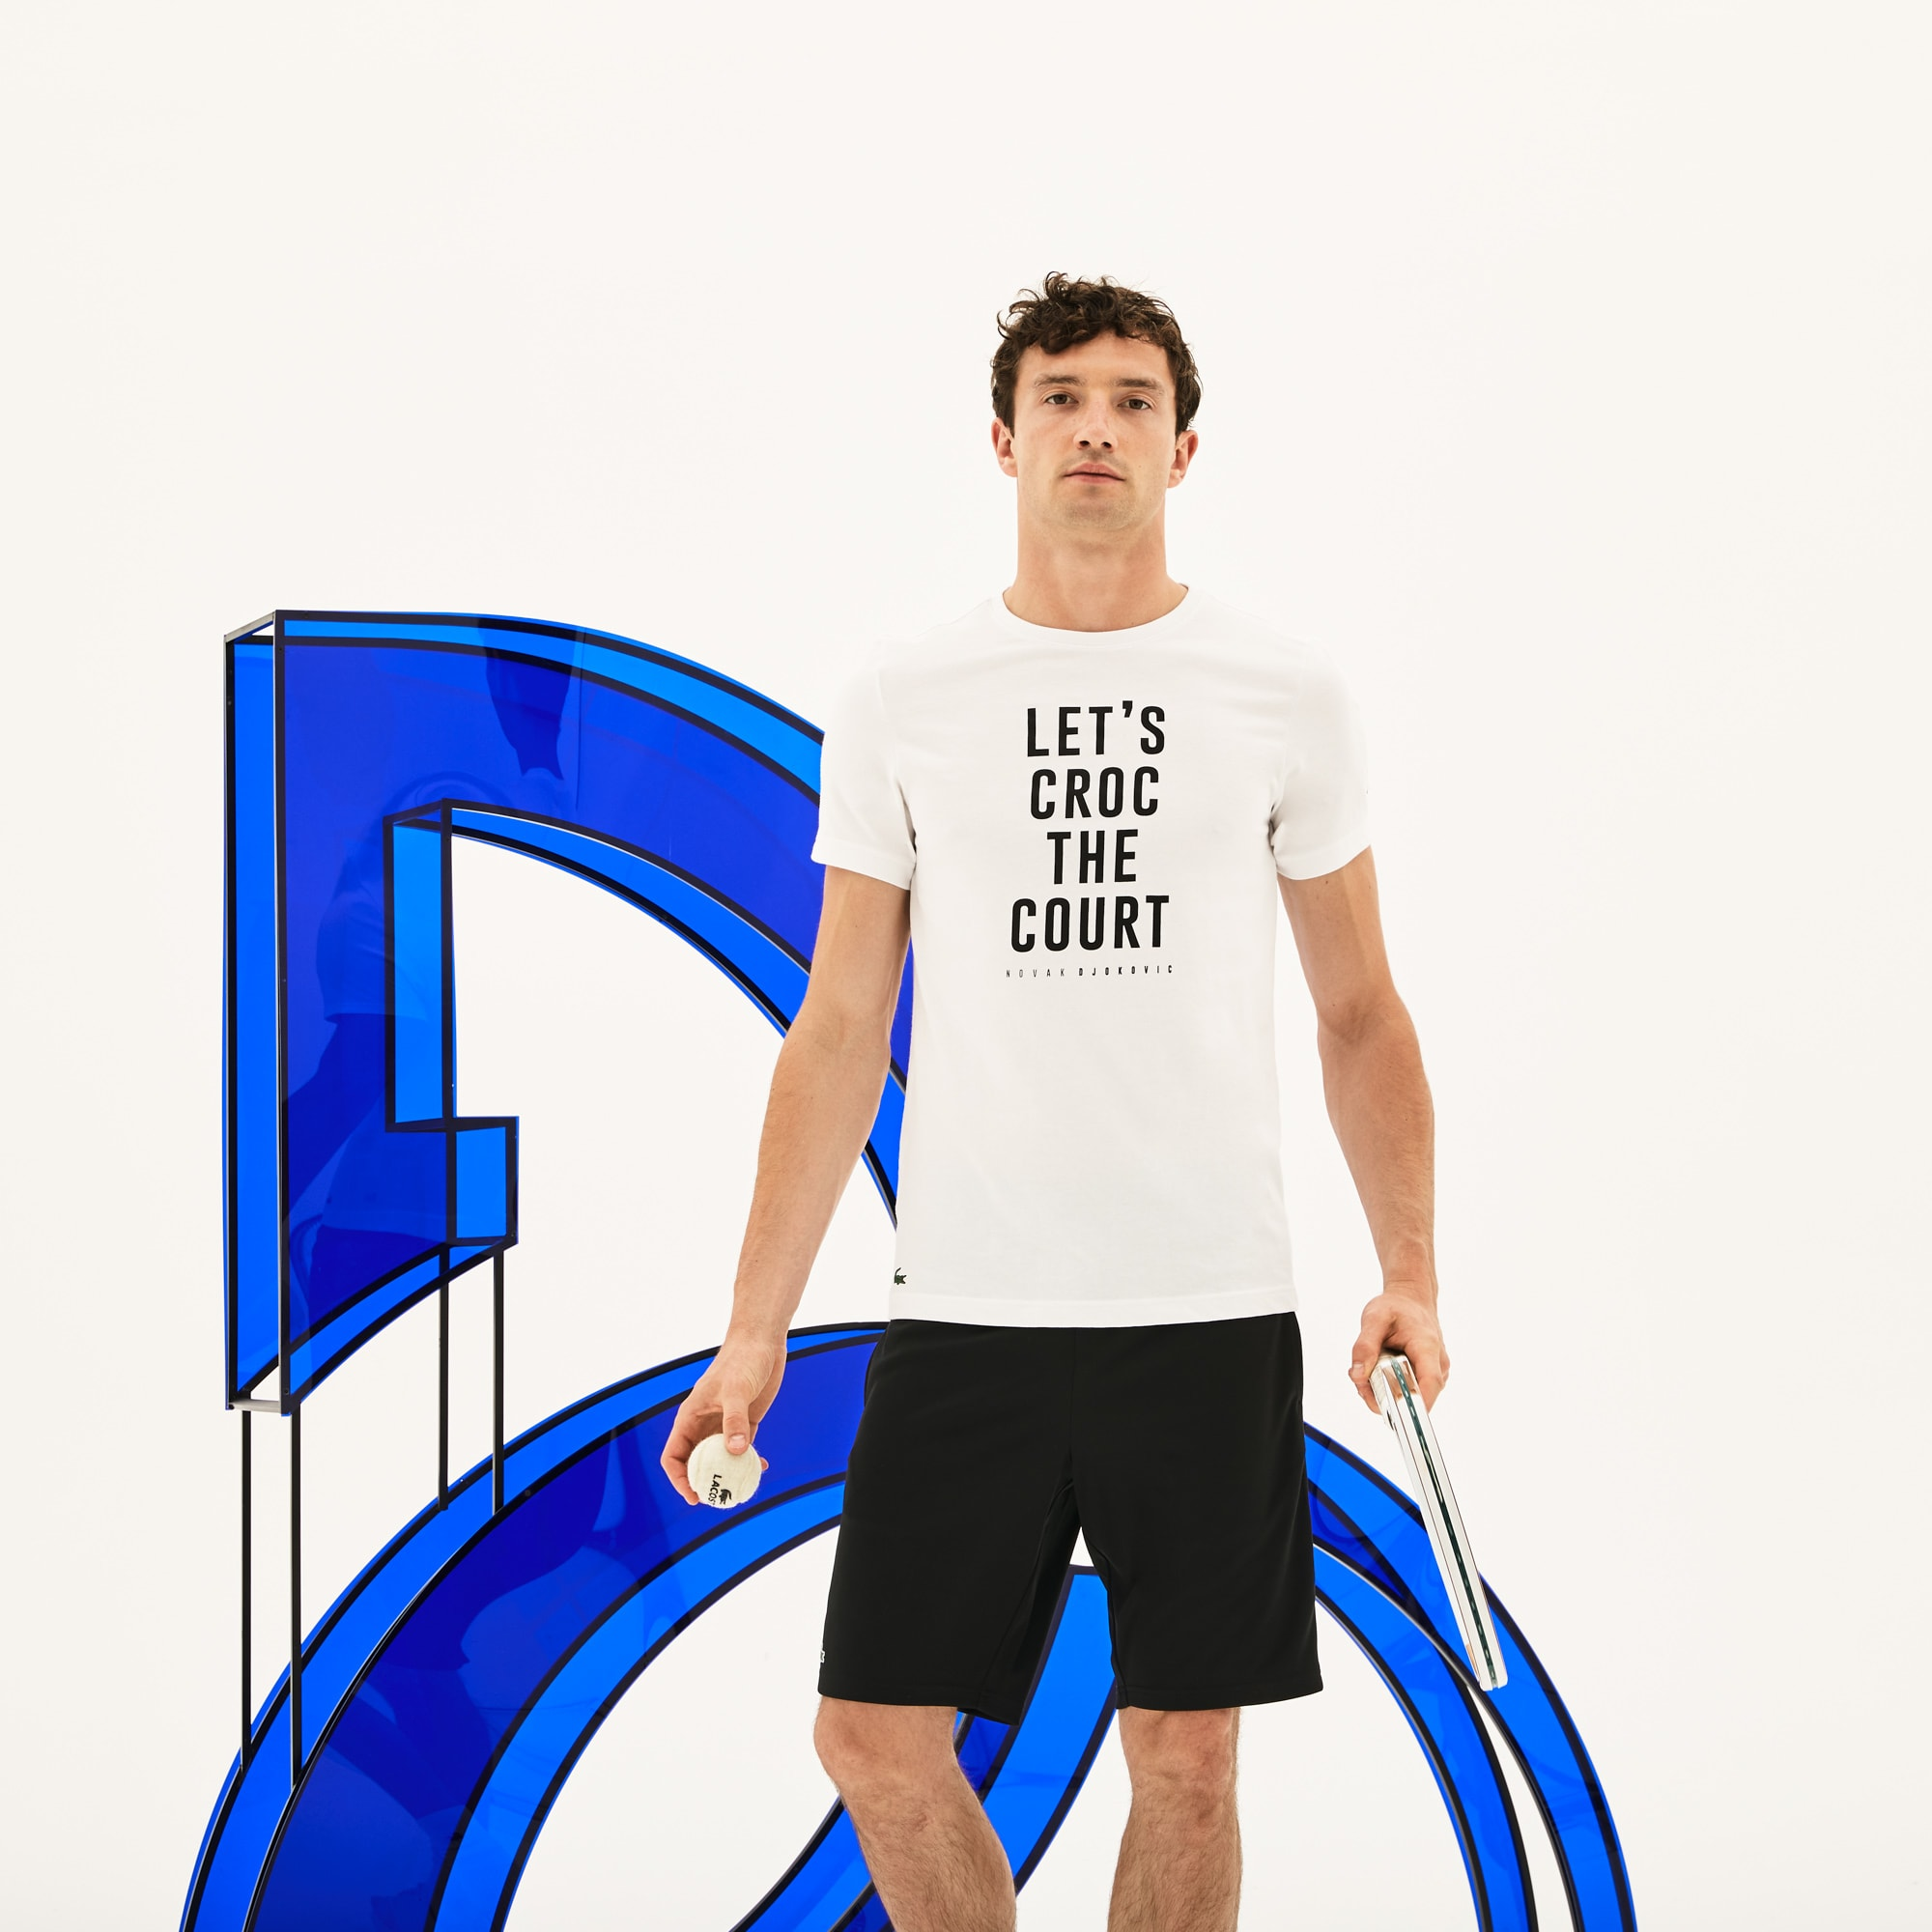 Men's SPORT Crew Neck Lettering Technical Jersey T-shirt -  x Novak Djokovic Support With Style - Off Court Collection